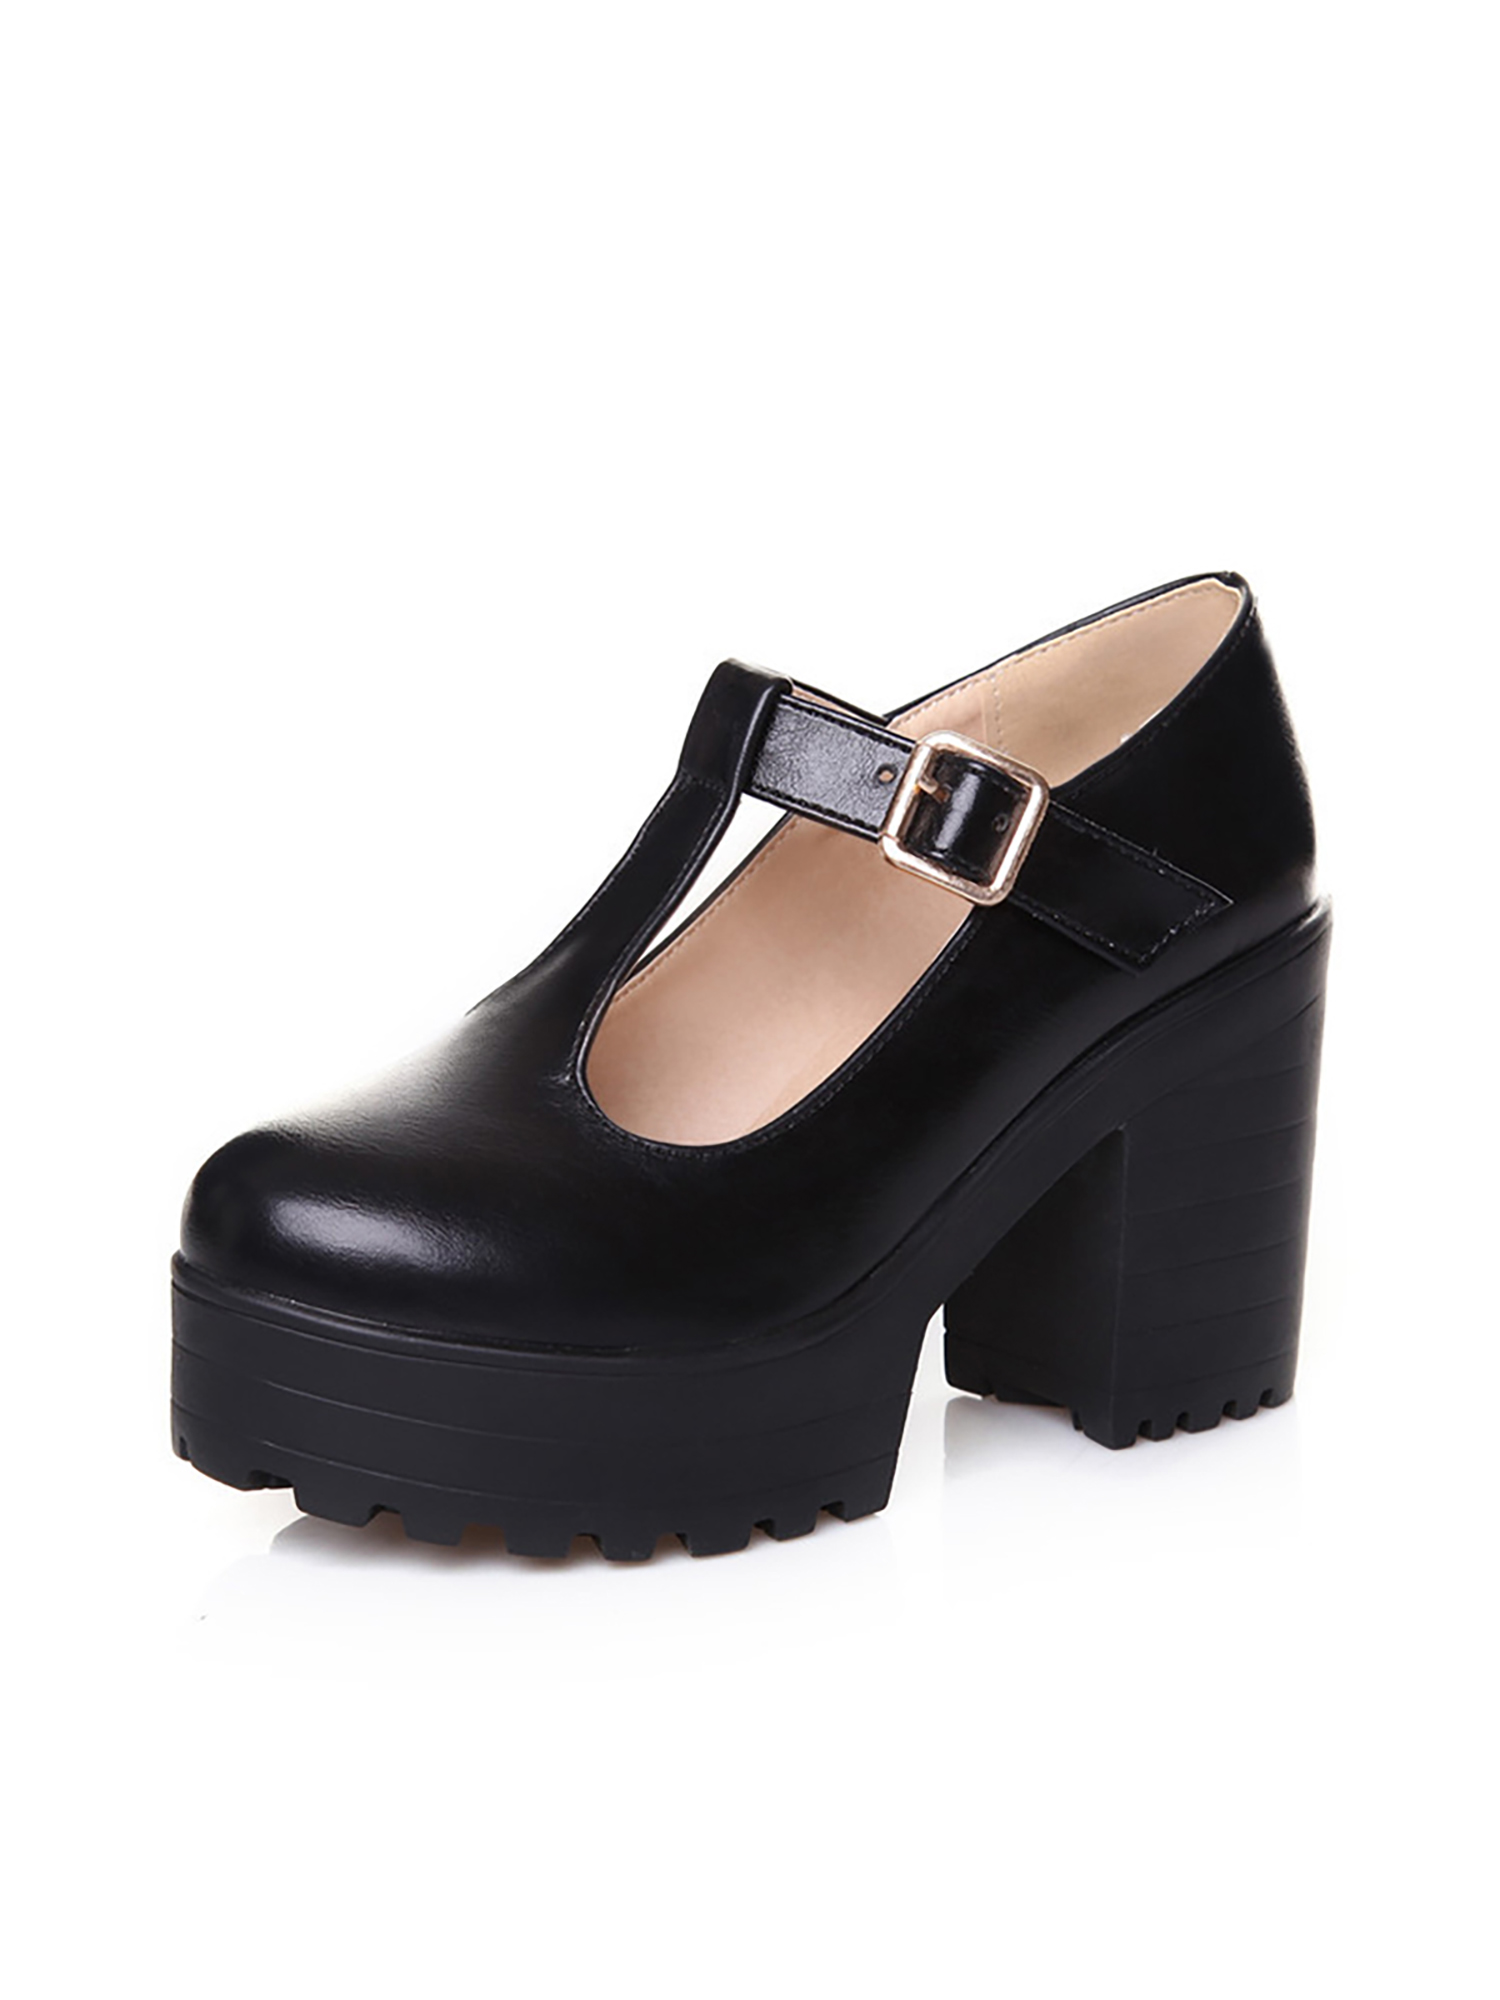 Details about  /Womens Mary Jane Round Toe Ankle Strap High Heel Platform Party Shoes big Size T